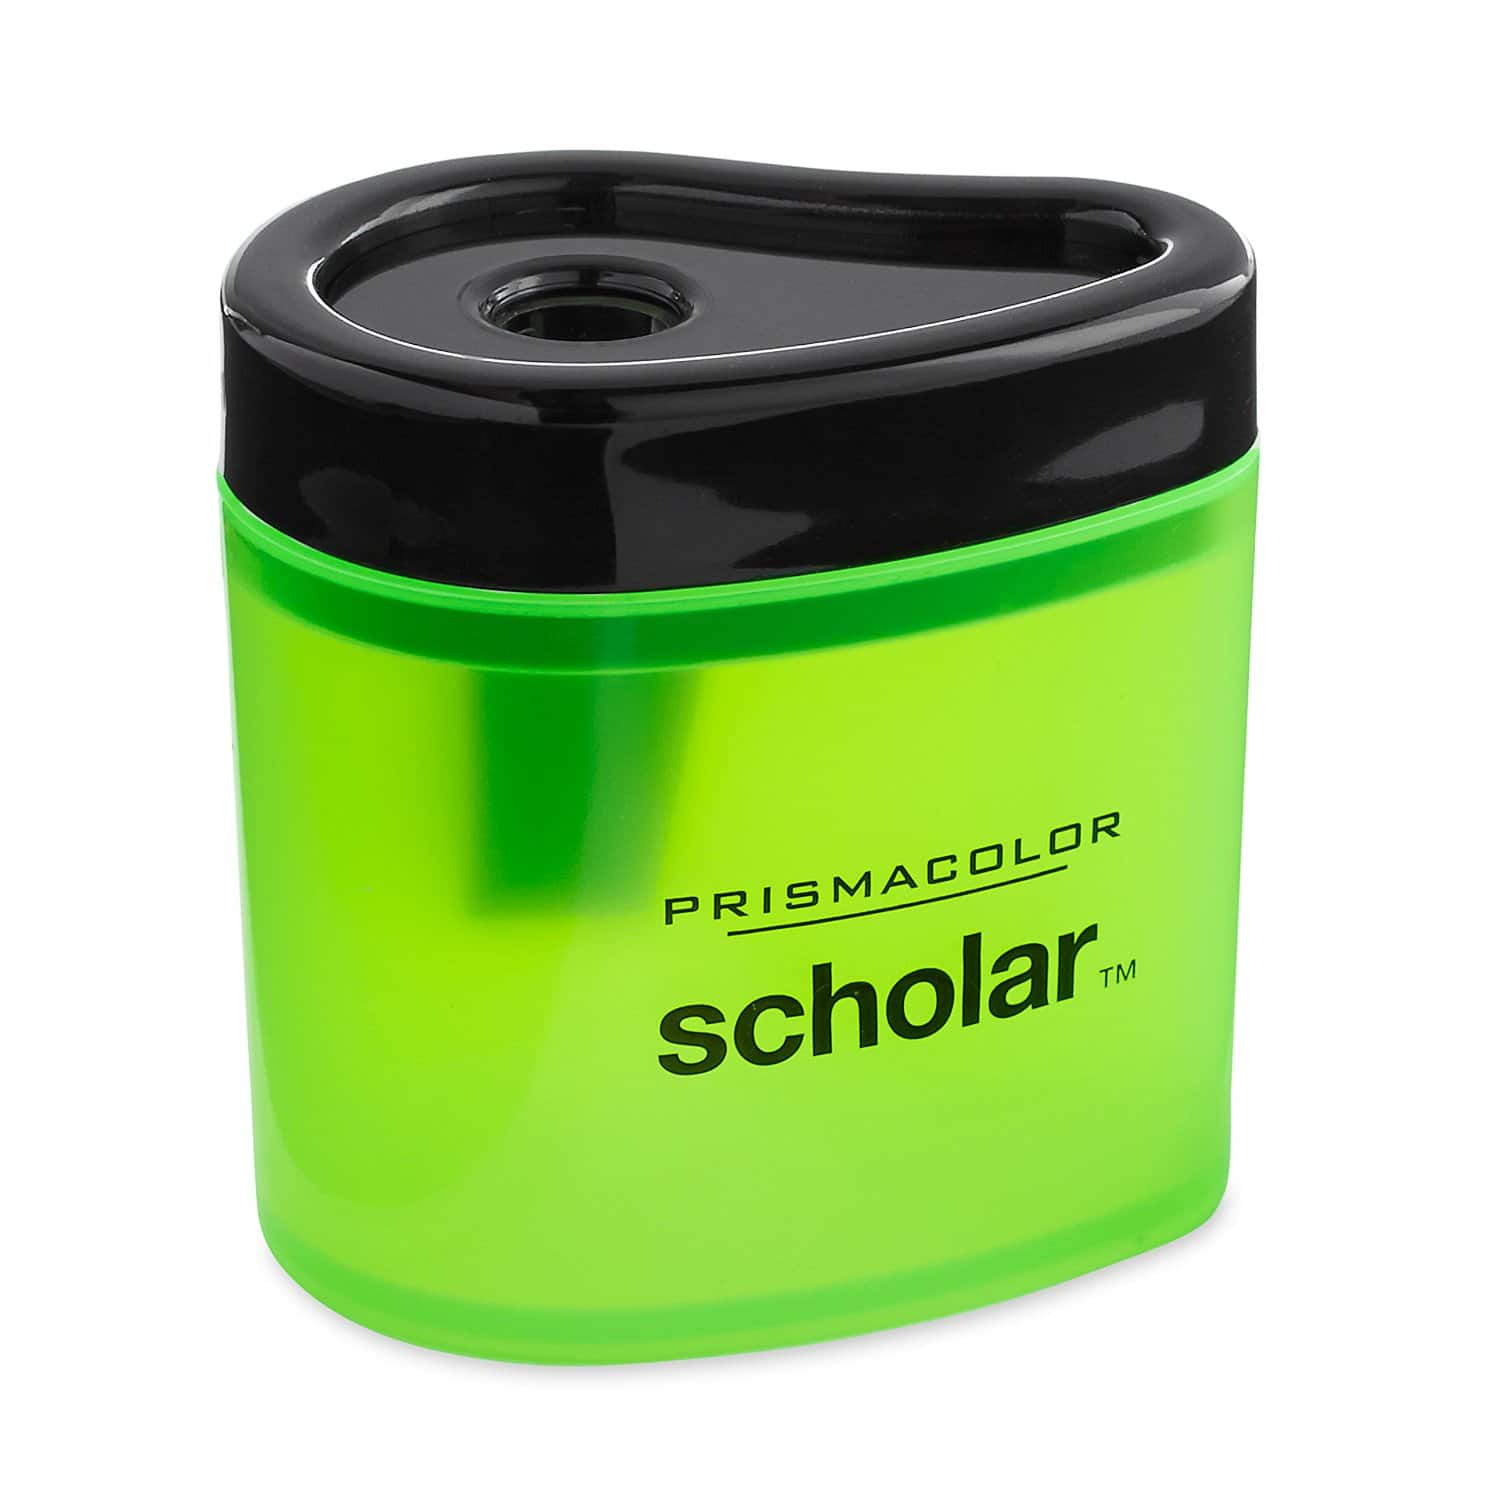 Prismacolor Scholar Pencil Sharpener  $1.60